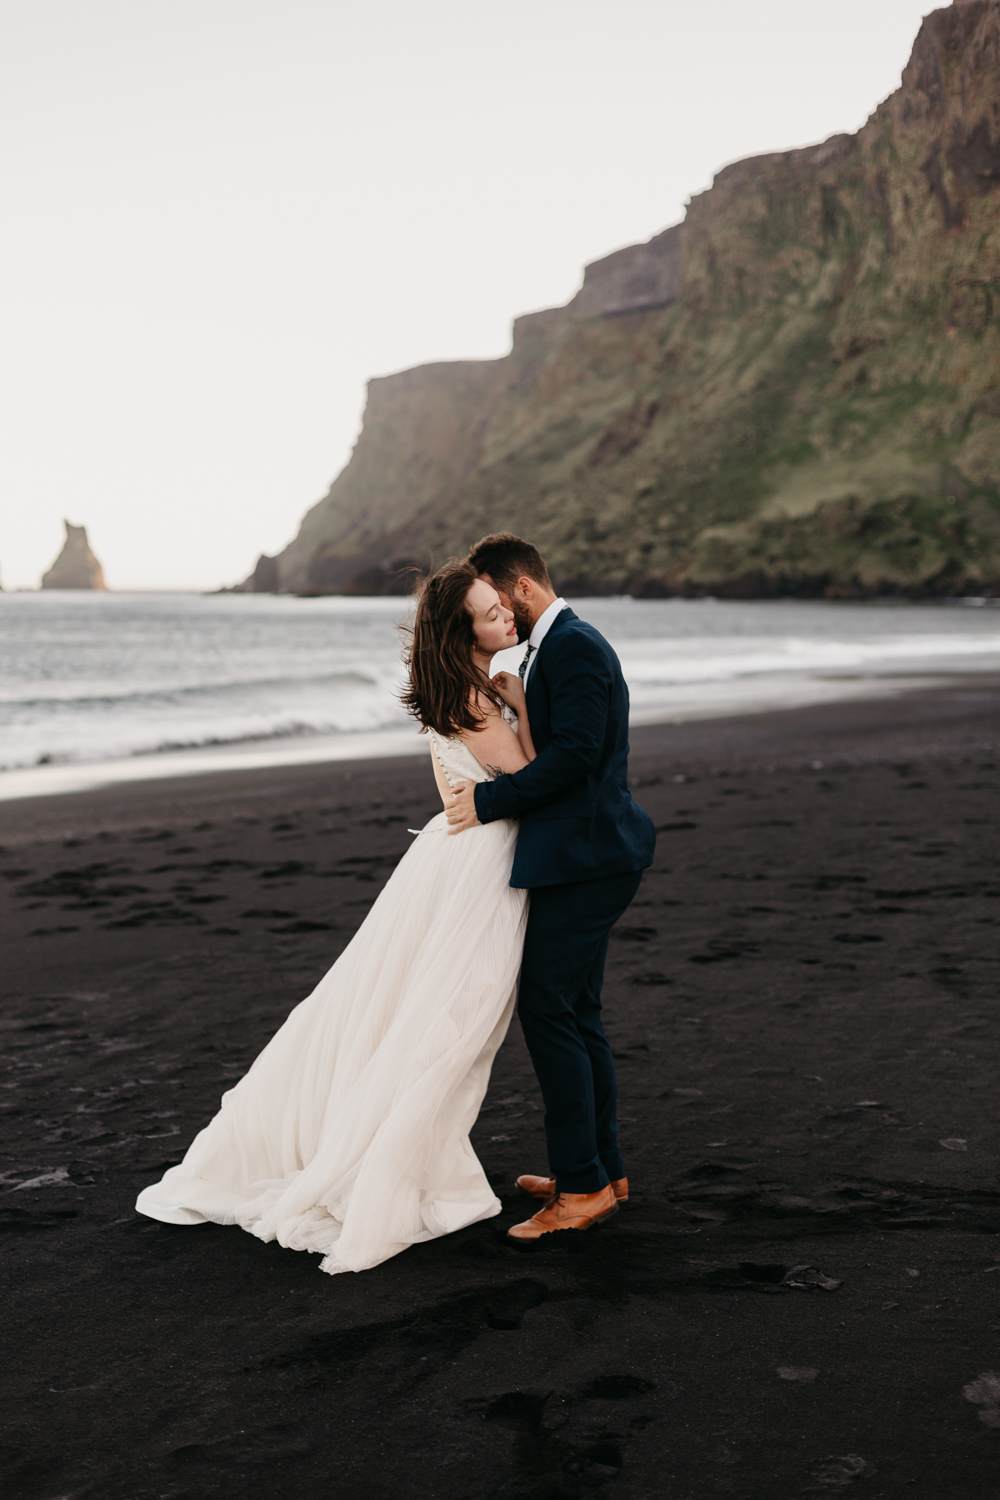 anna szczekutowicz iceland wedding photogapher elopement photographer-100.jpg